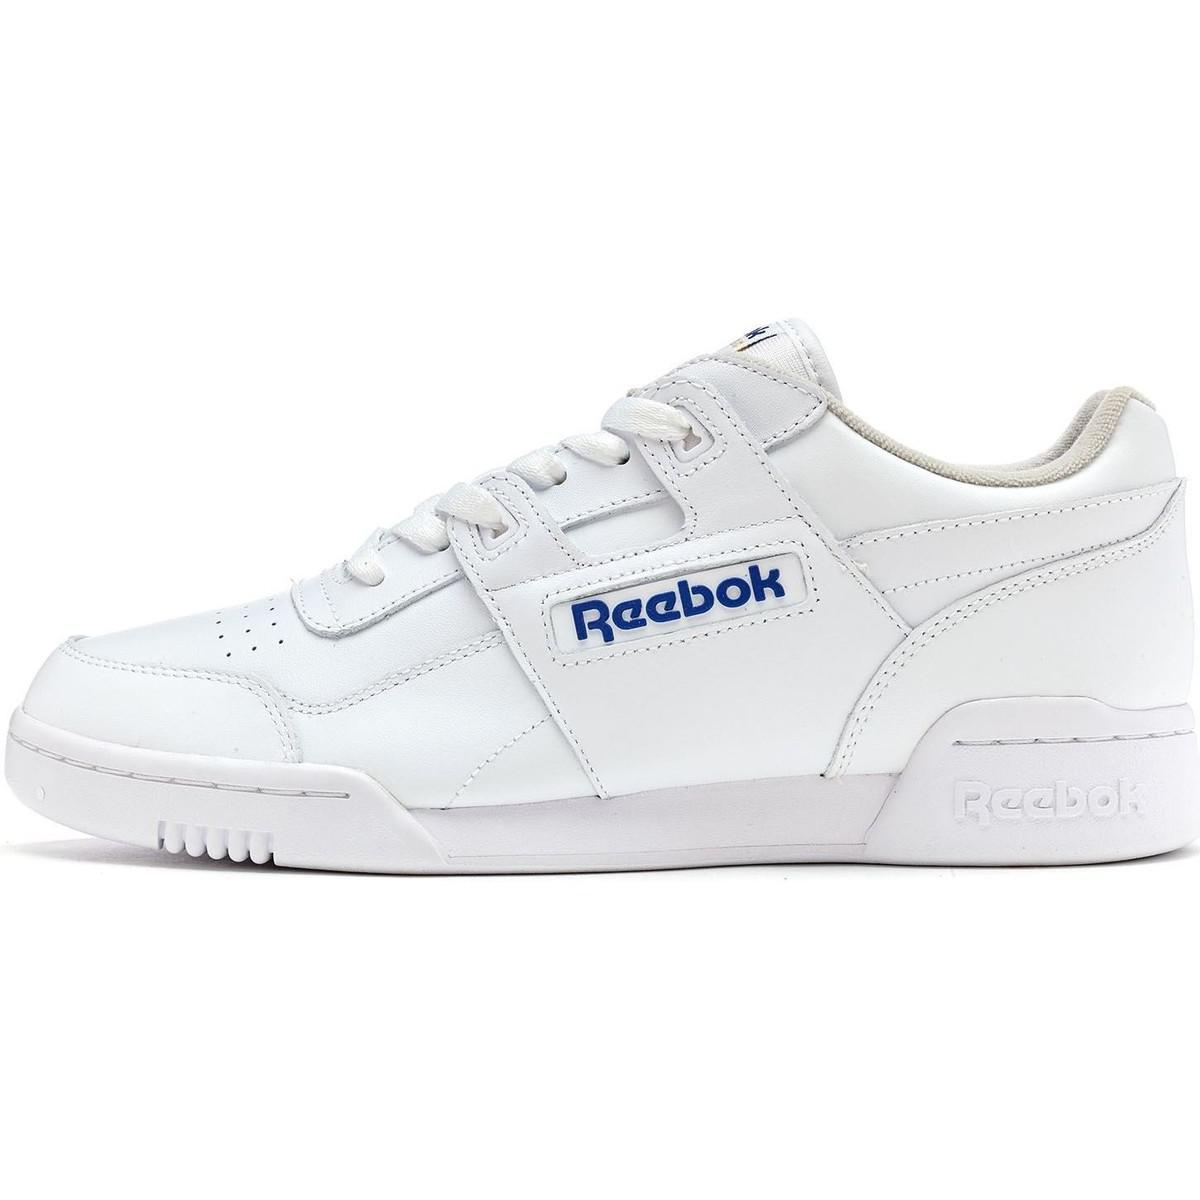 89786a273c8 Reebok Classics Workout Plus Trainers In White Royal Blue 2759 Men s ...